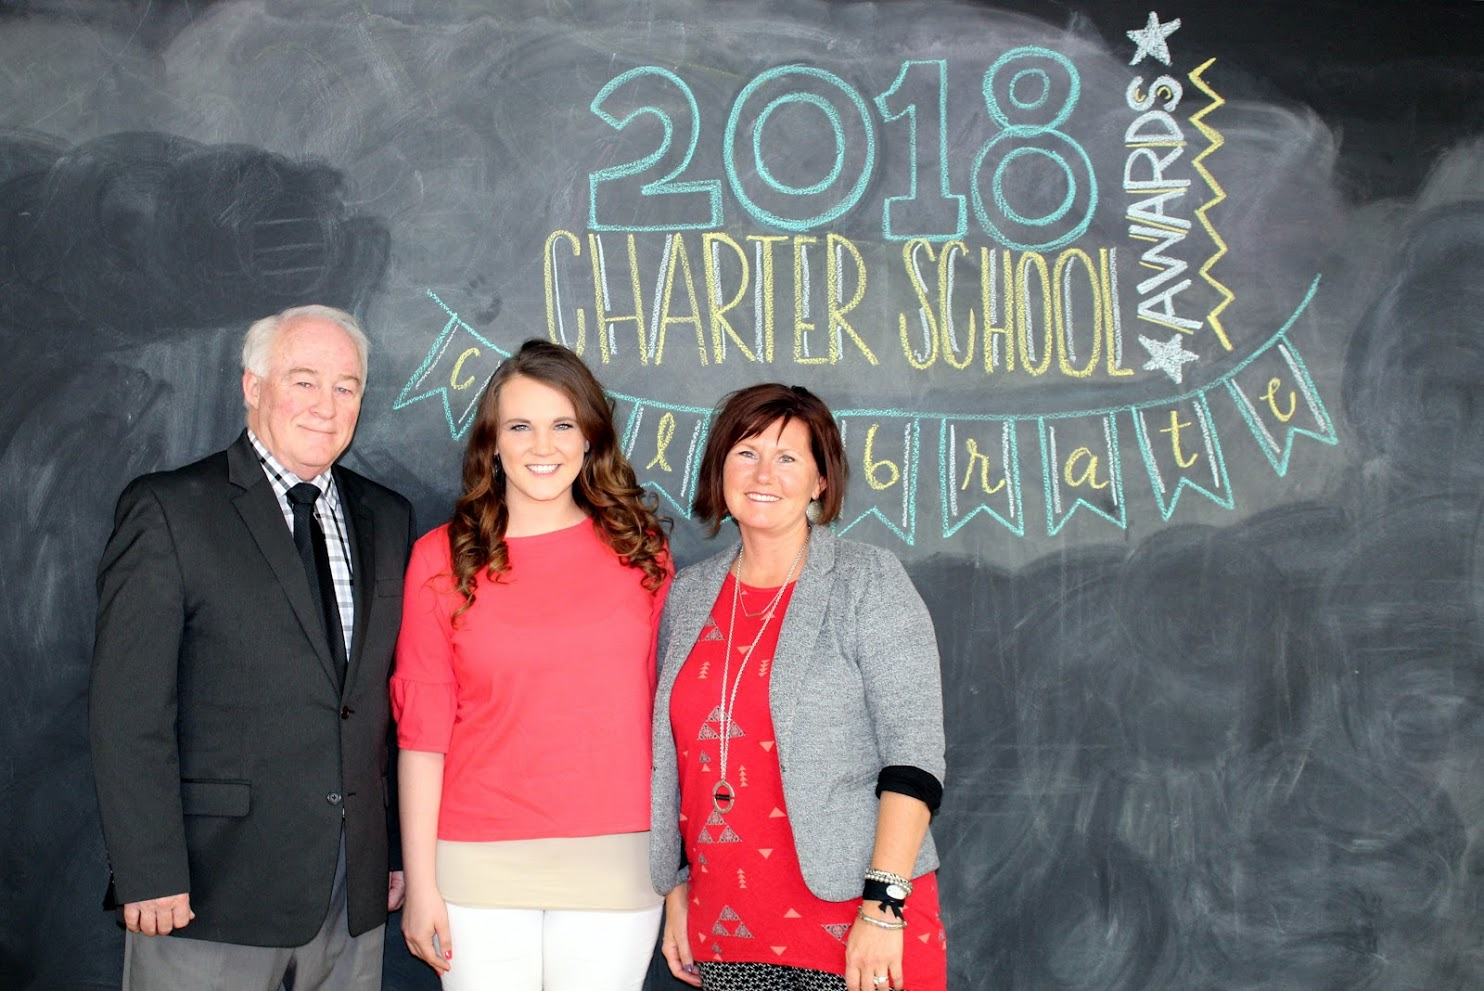 A photo of Kayla Campbell, 2018 Charter School Teacher of the Year finalist.